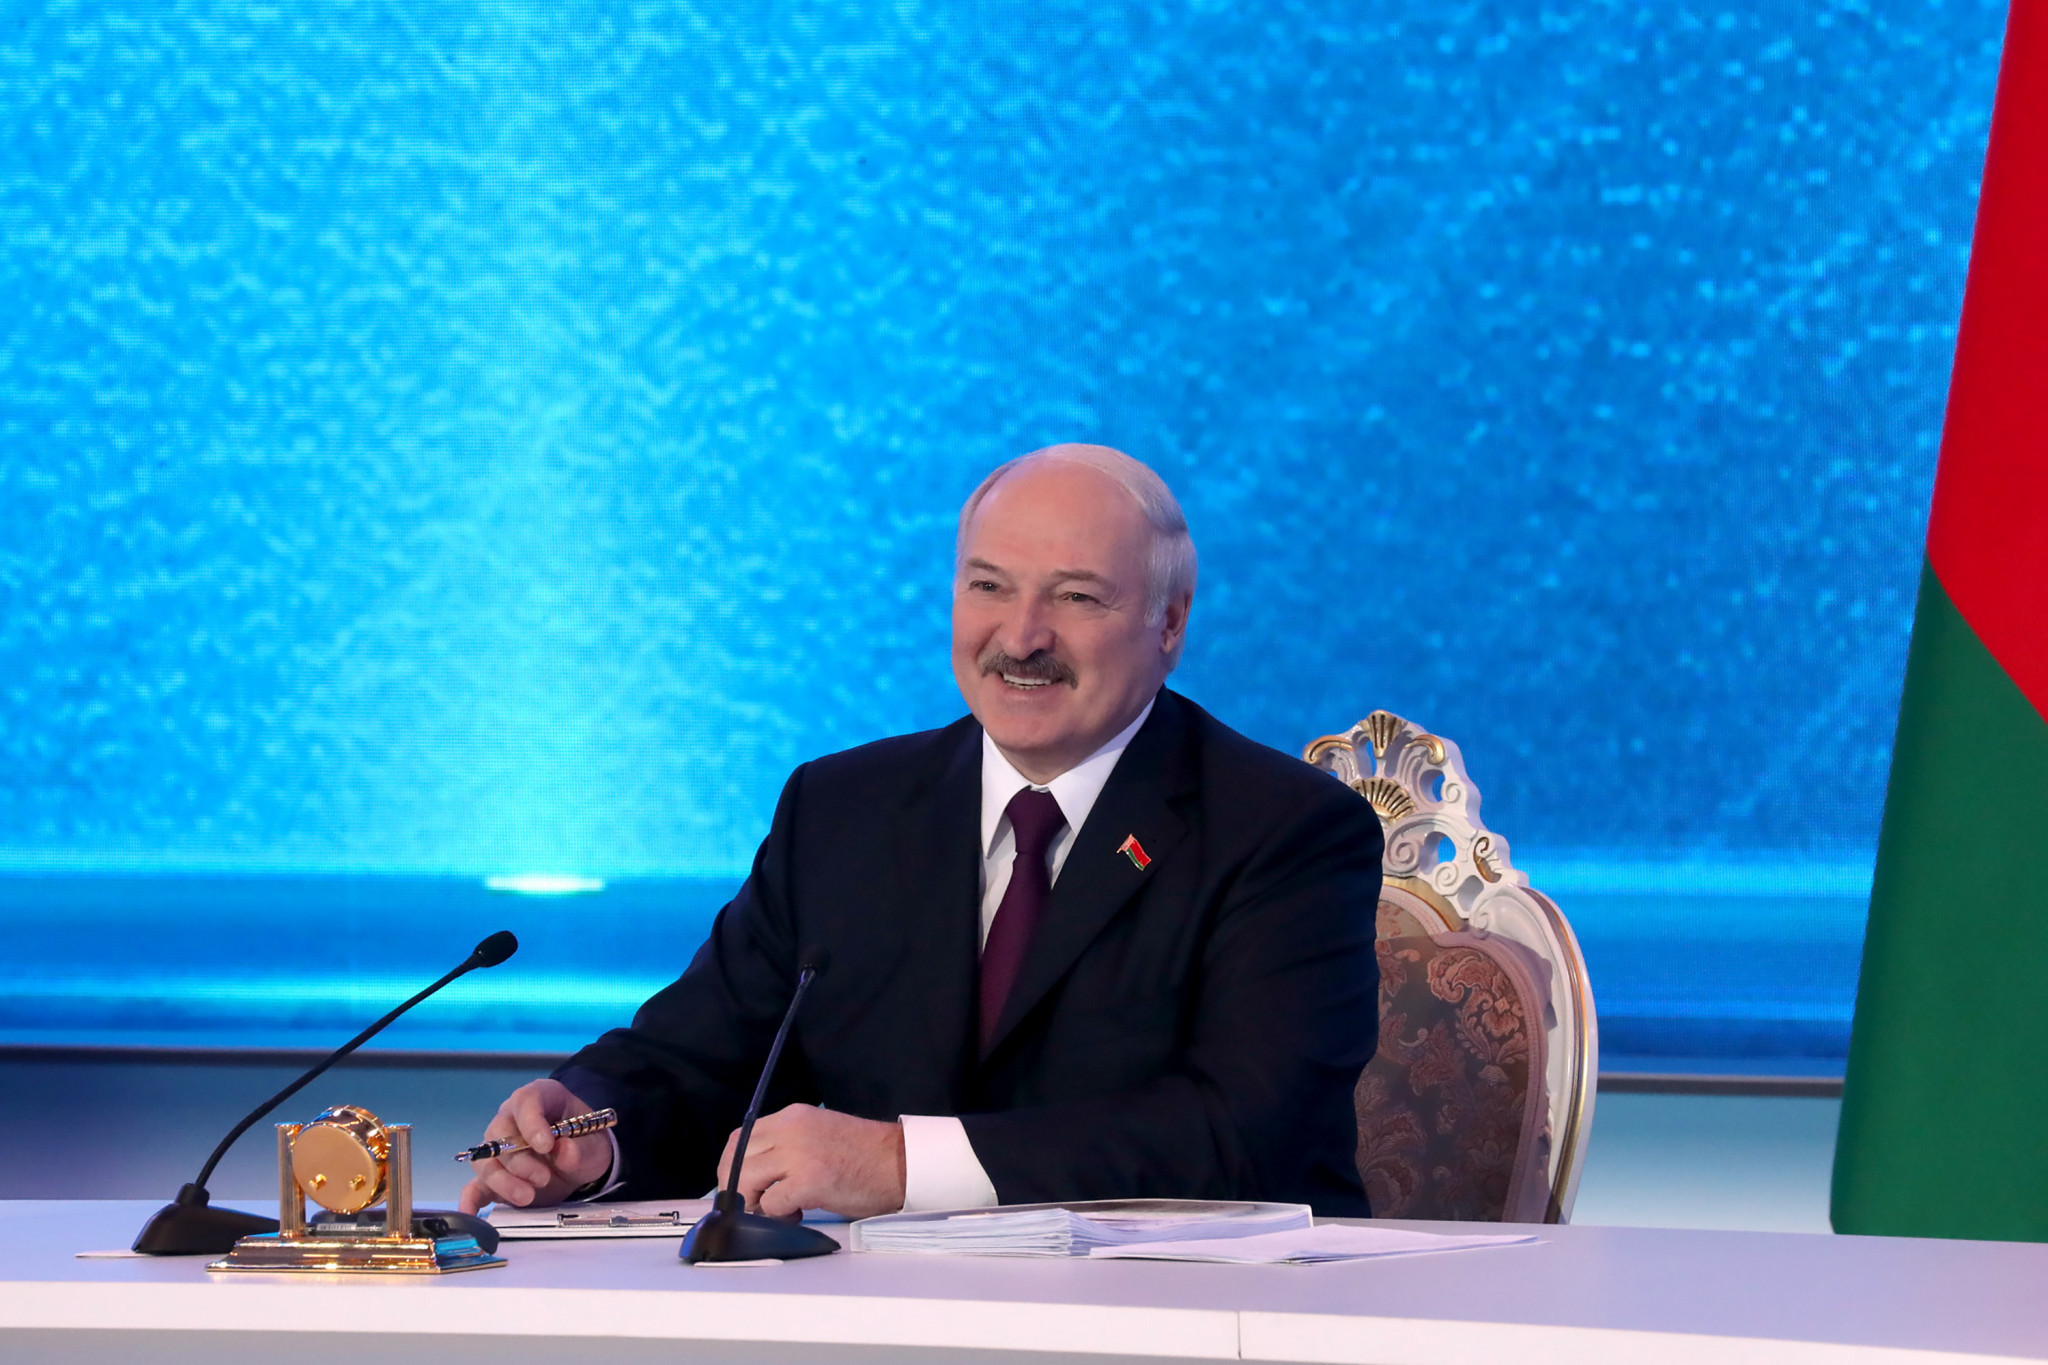 The conference has been organised in part by the Minsk 2019 Organising Committee, run by Belarusian President Alexander Lukashenko ©Getty Images